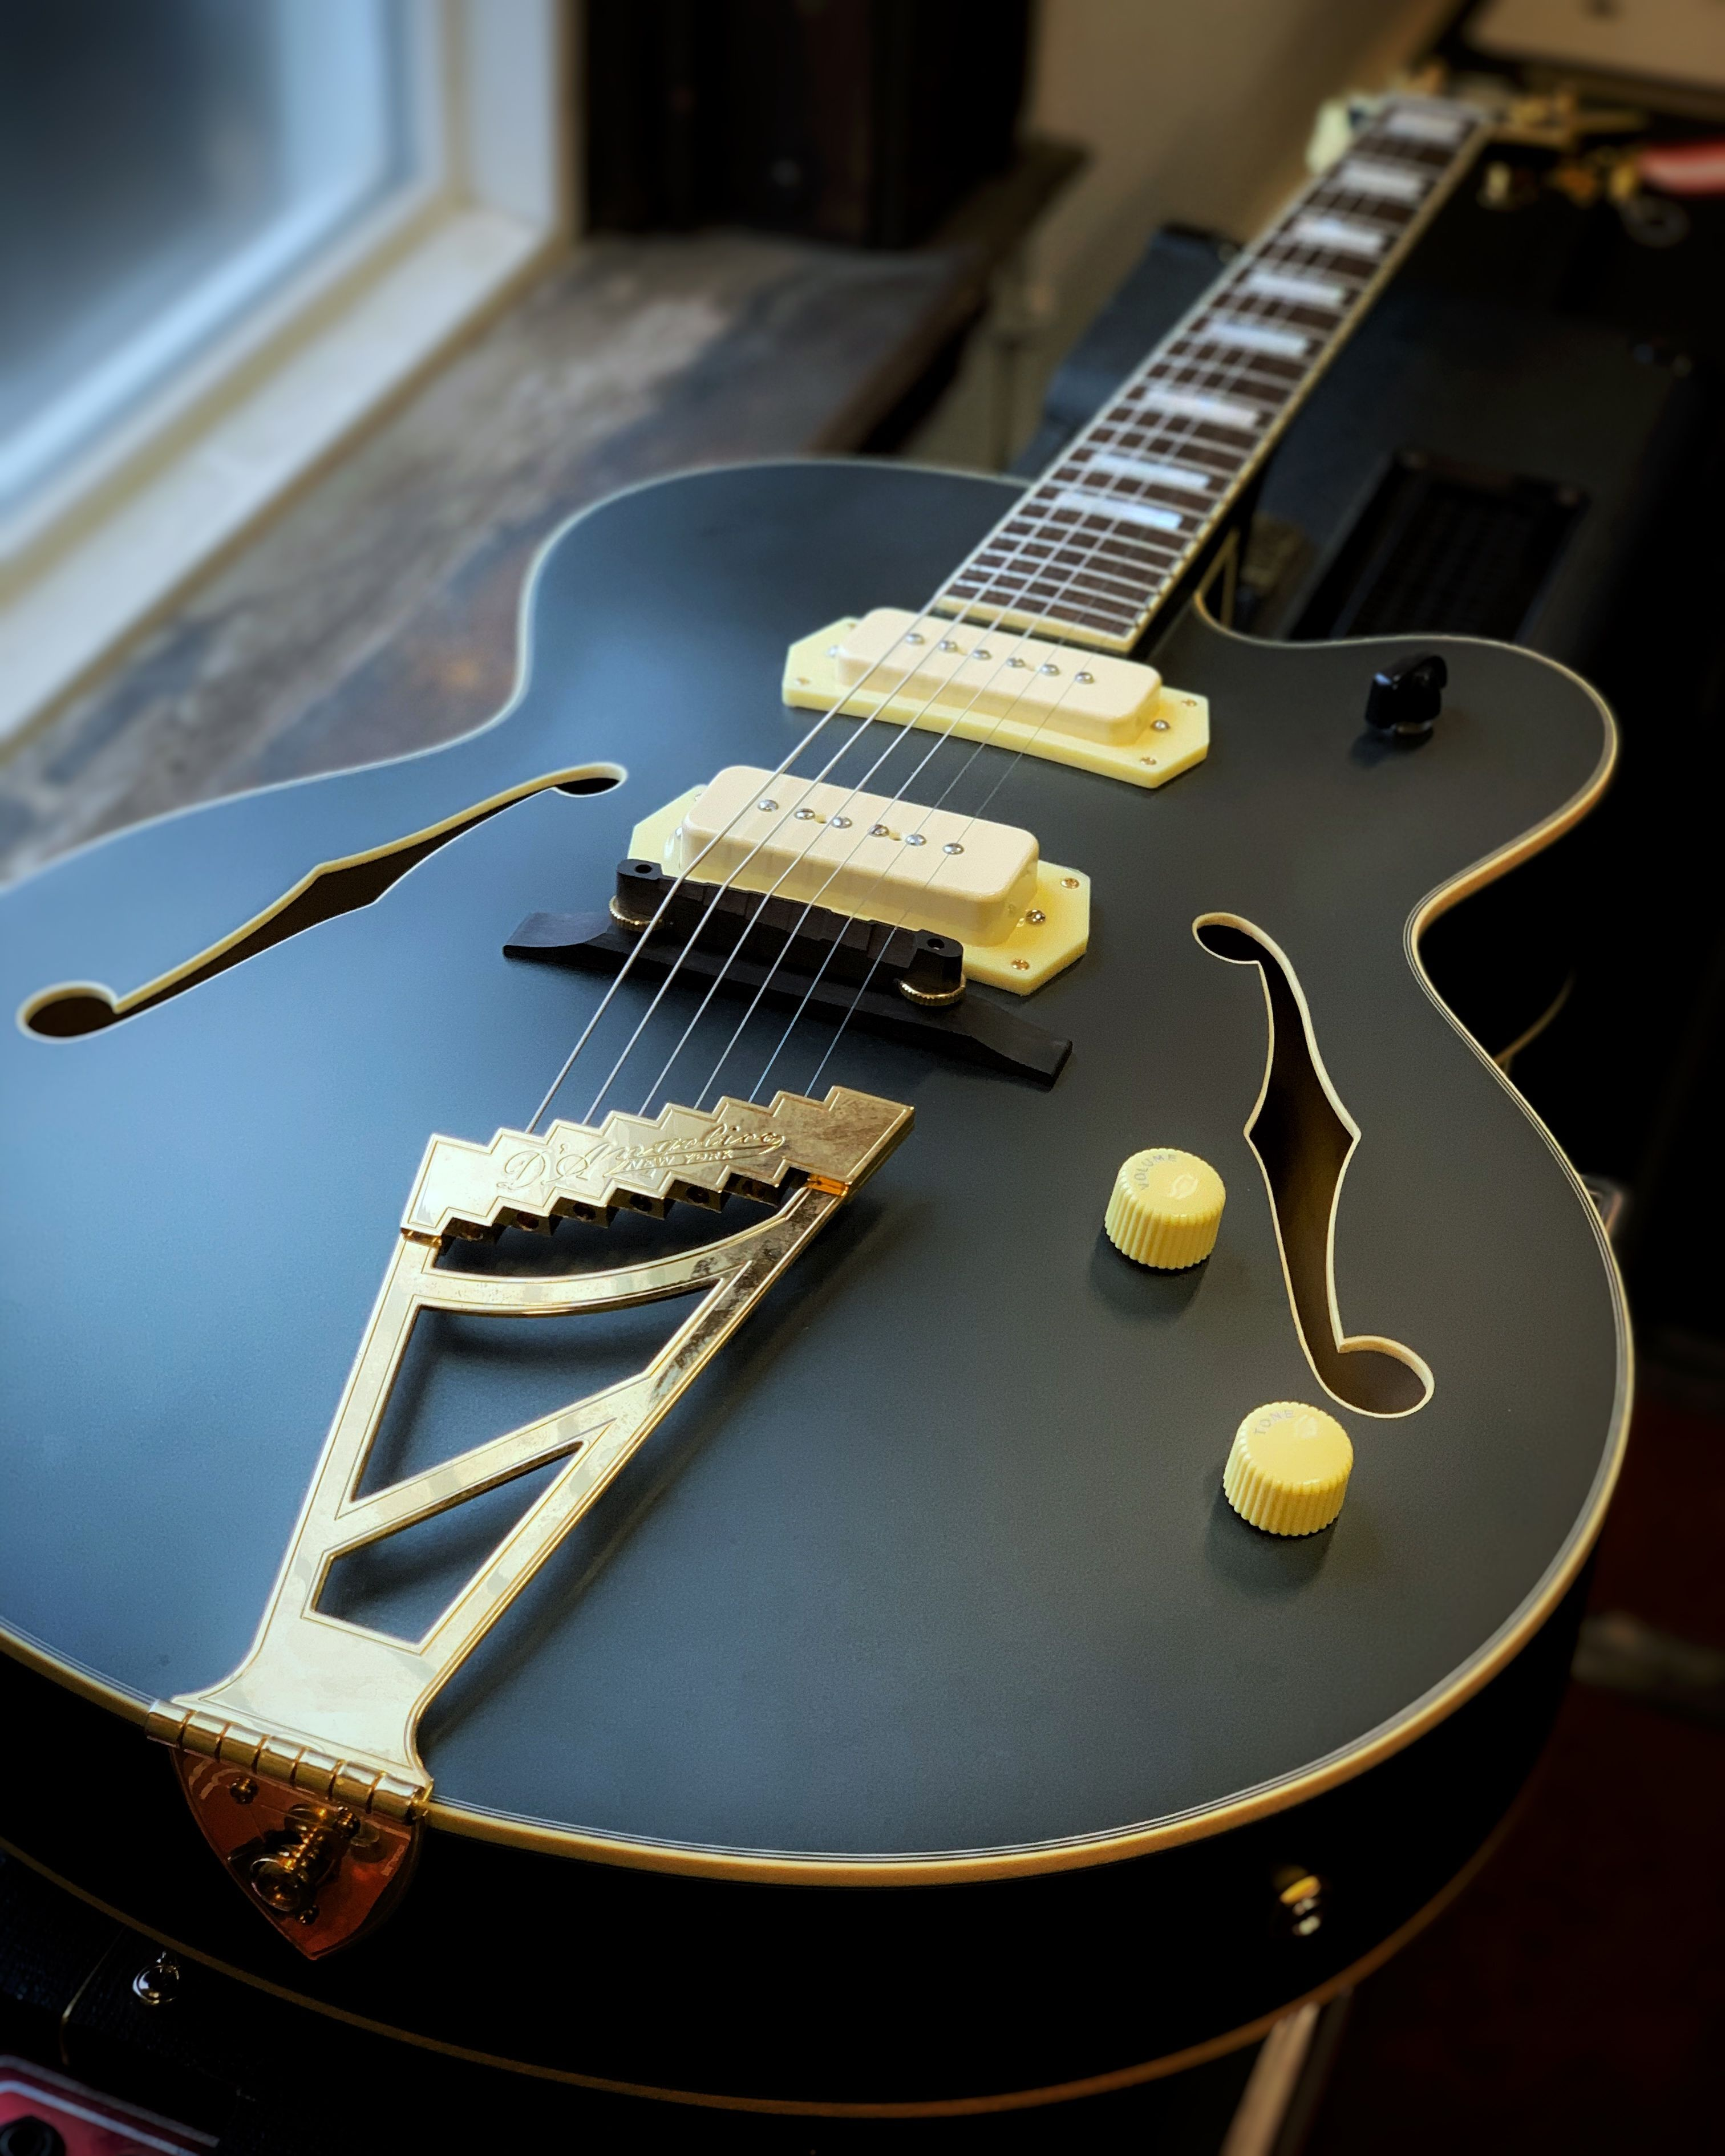 D Angelico Deluxe 59 Archtop Electric Guitar With Case Midnight Matte Finish Electric Guitar Guitar Archtop Guitar